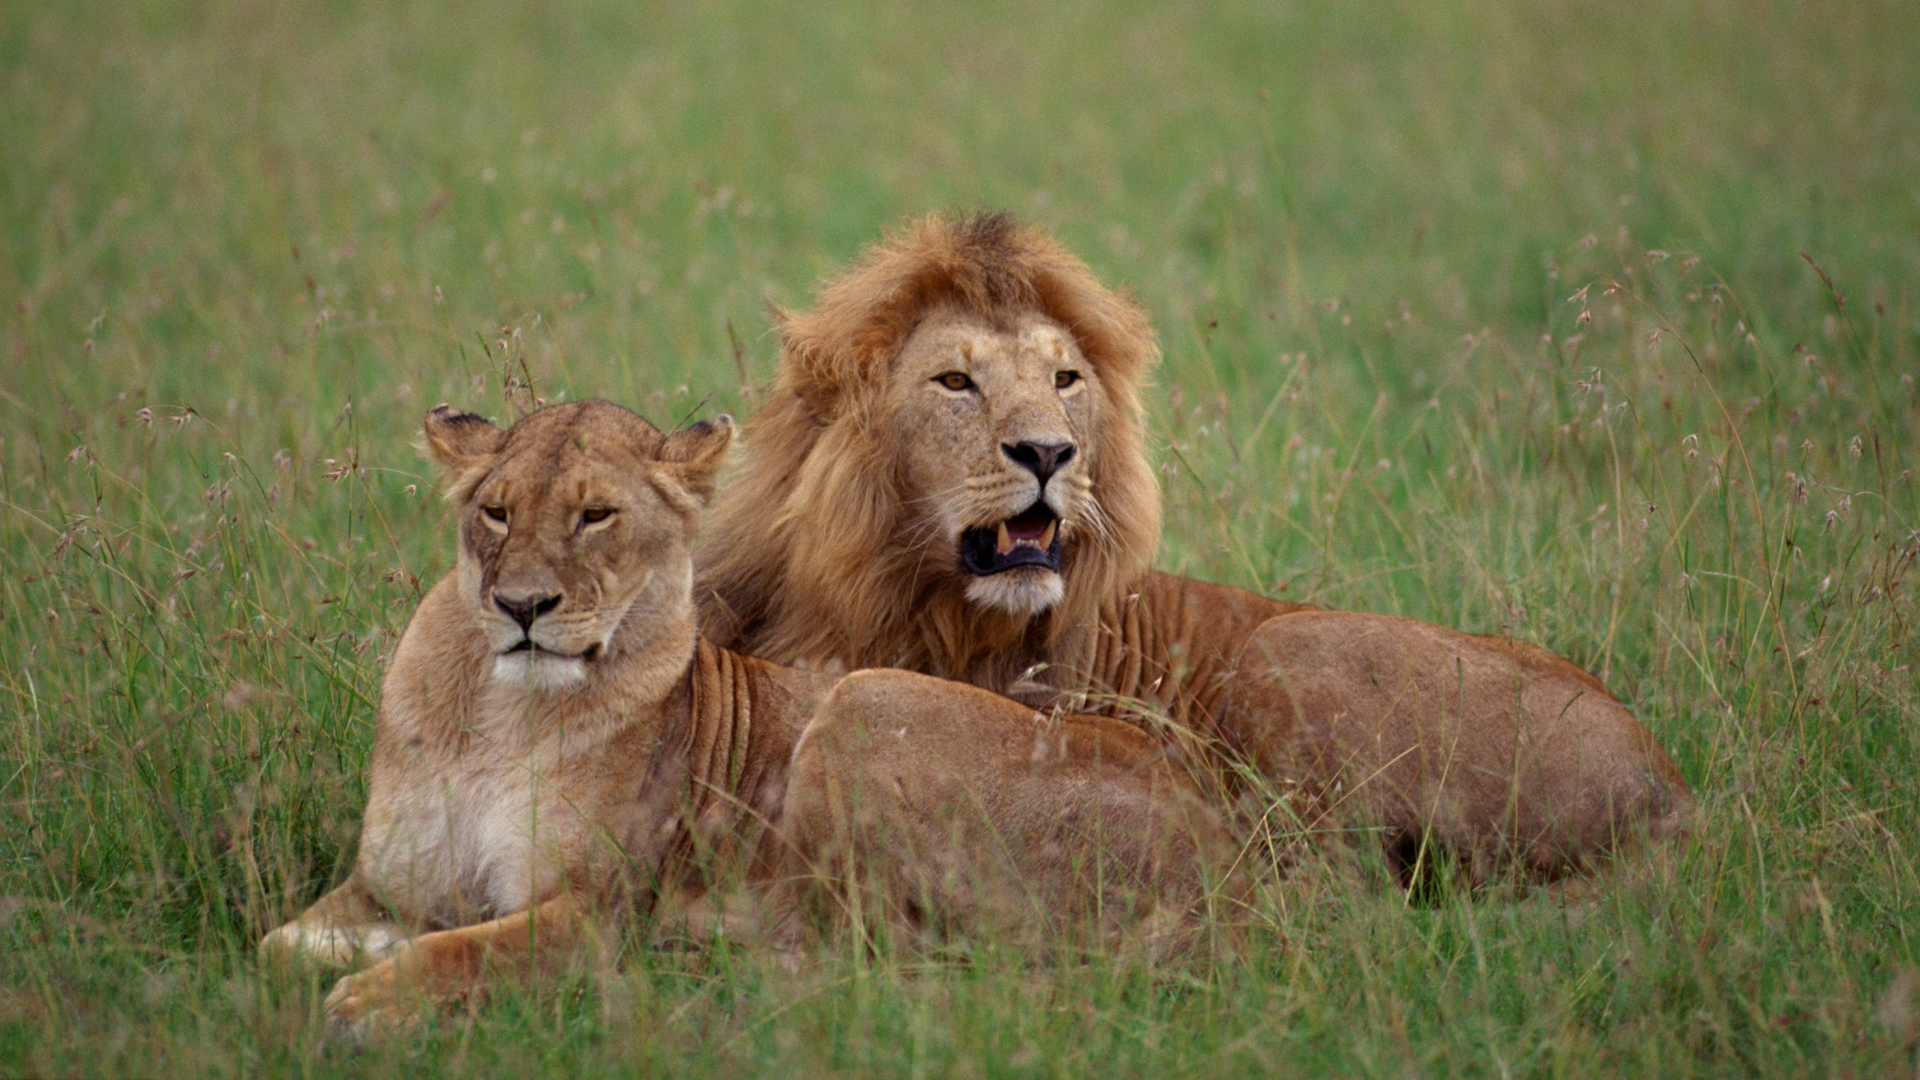 Download Wallpaper 1920x1080 Lion Lioness Grass Couple Lying